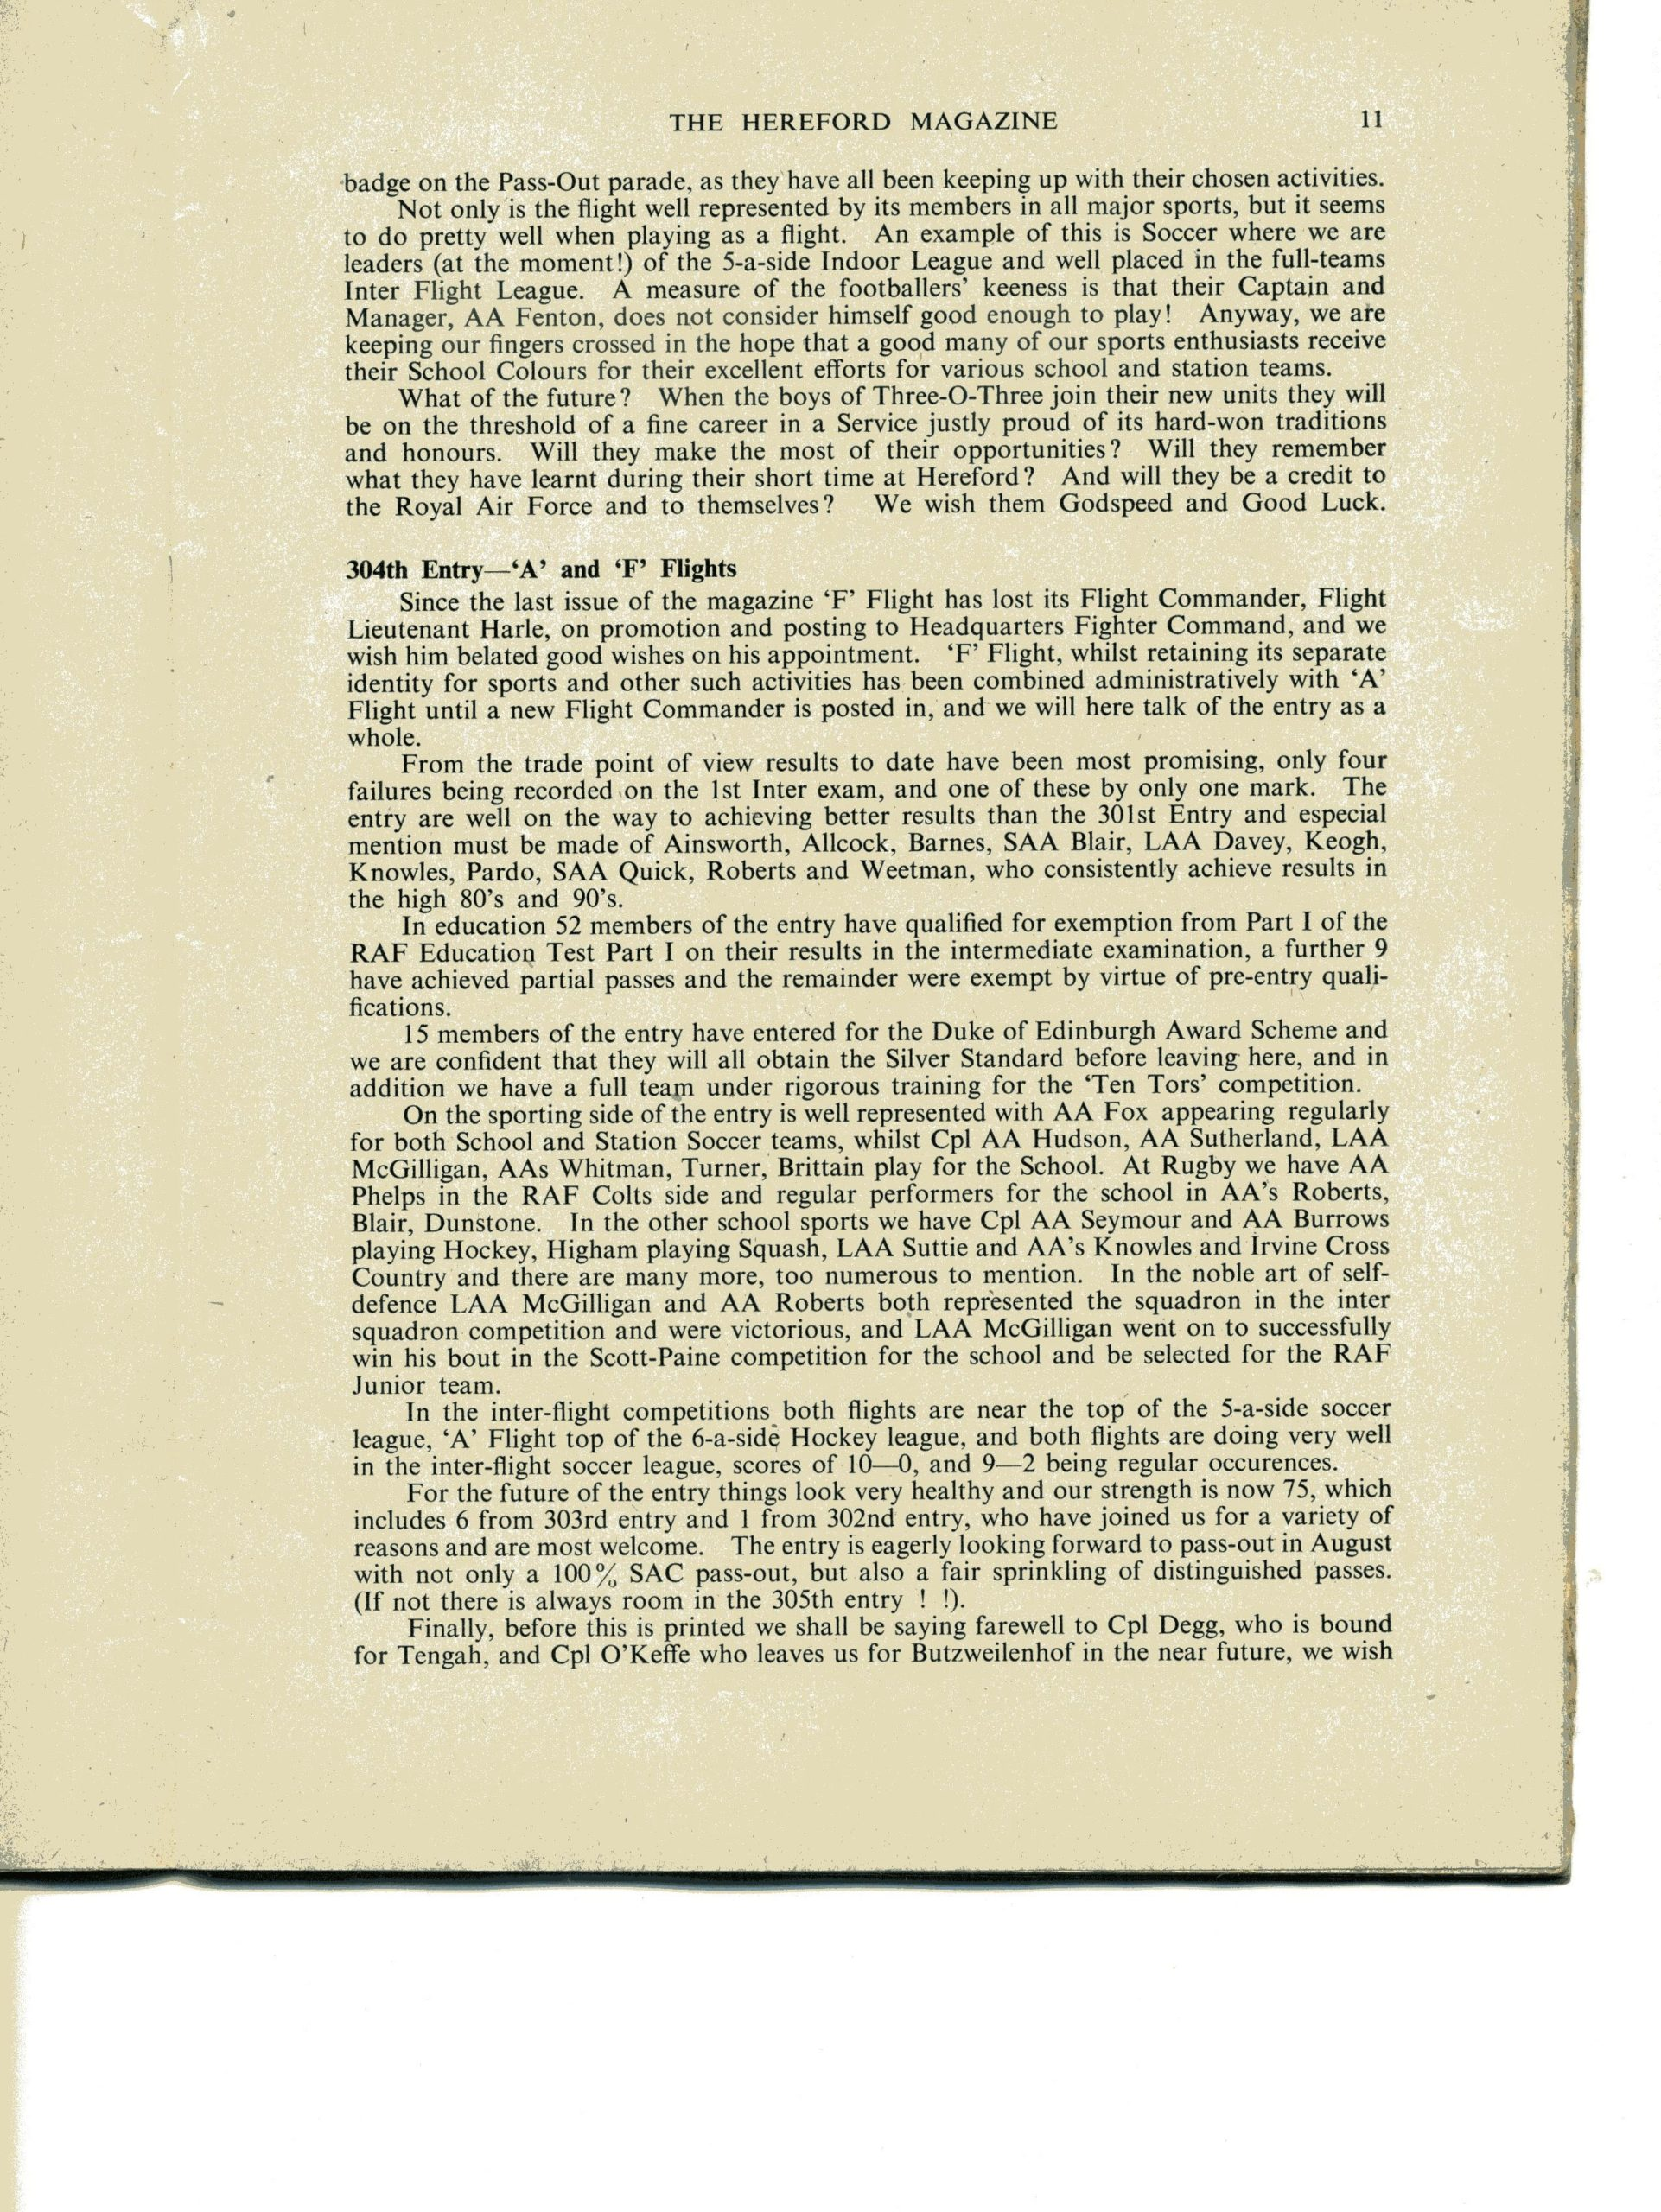 Hereford-Magazine-Extract-1966-304th